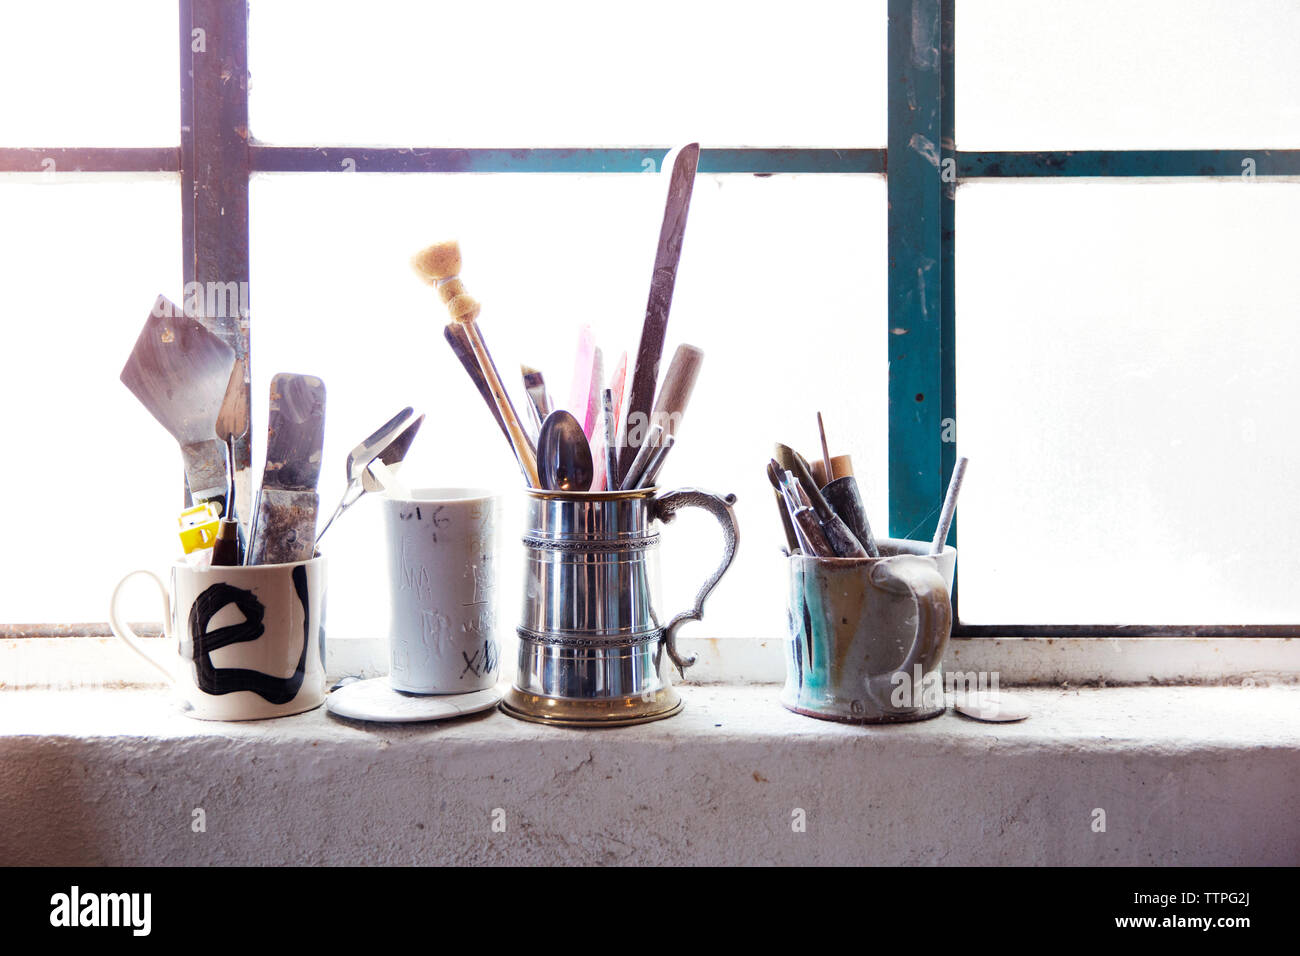 Paint brushes and tools in cup on window sill Stock Photo